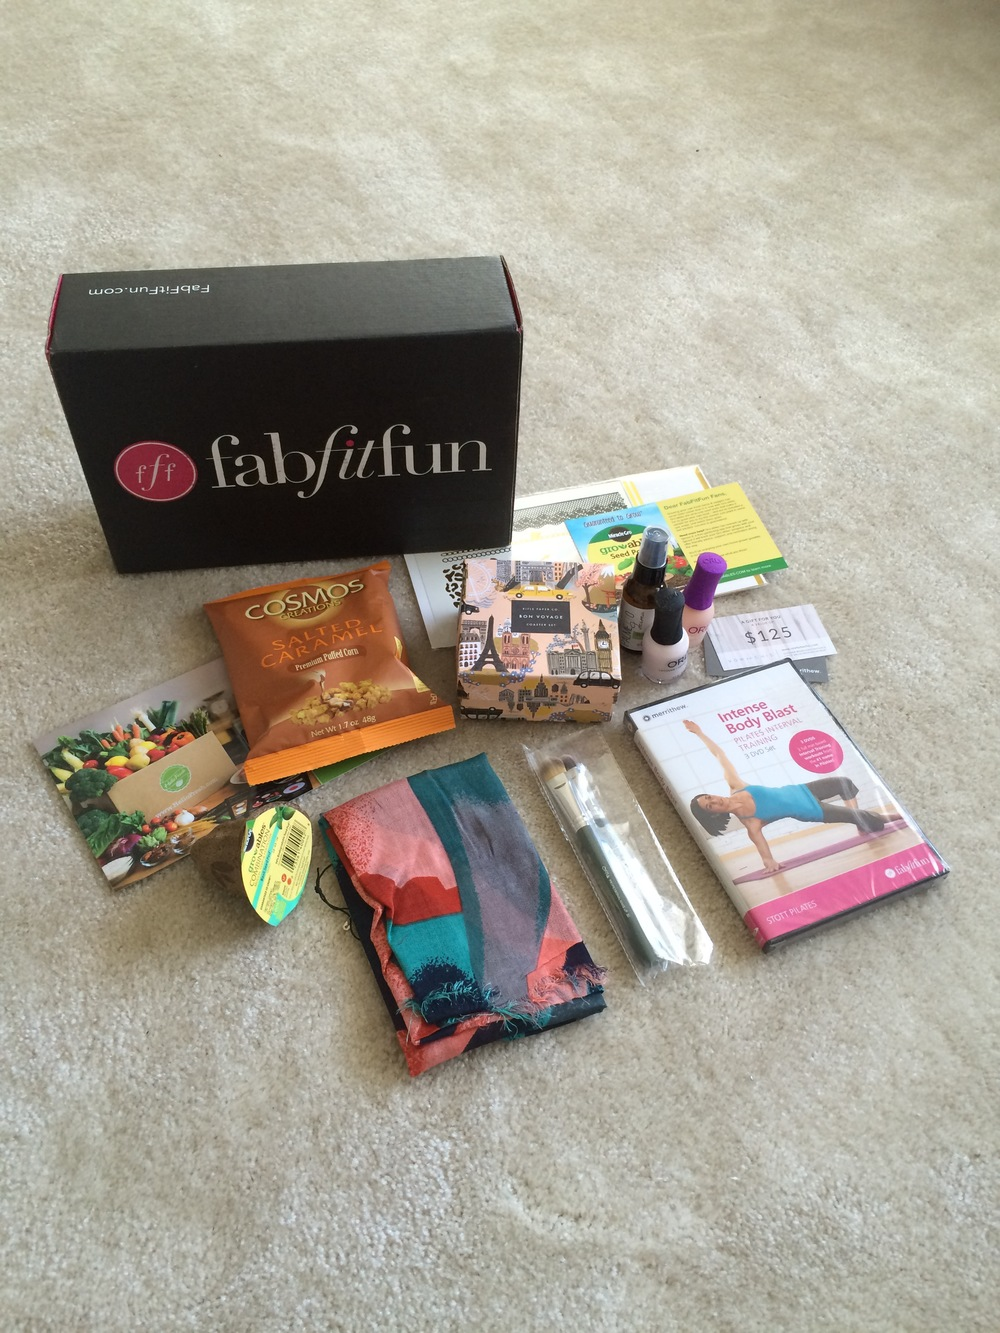 fabfitfun_candy washington.JPG